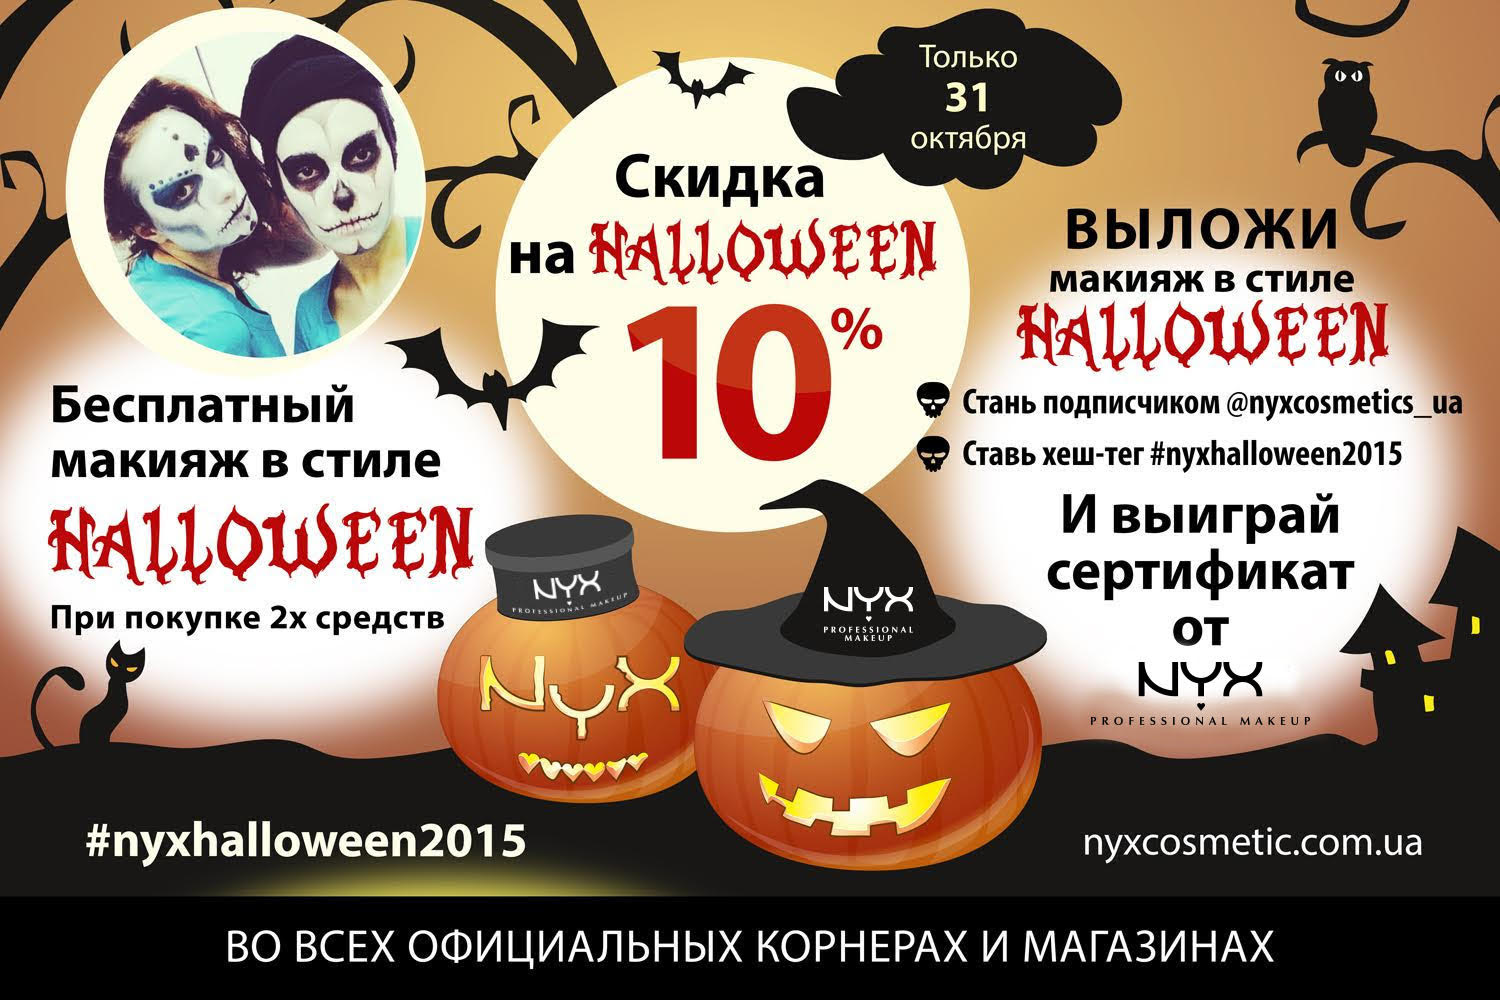 Макияж от NYX PROFESSIONAL MAKEUP на Halloween